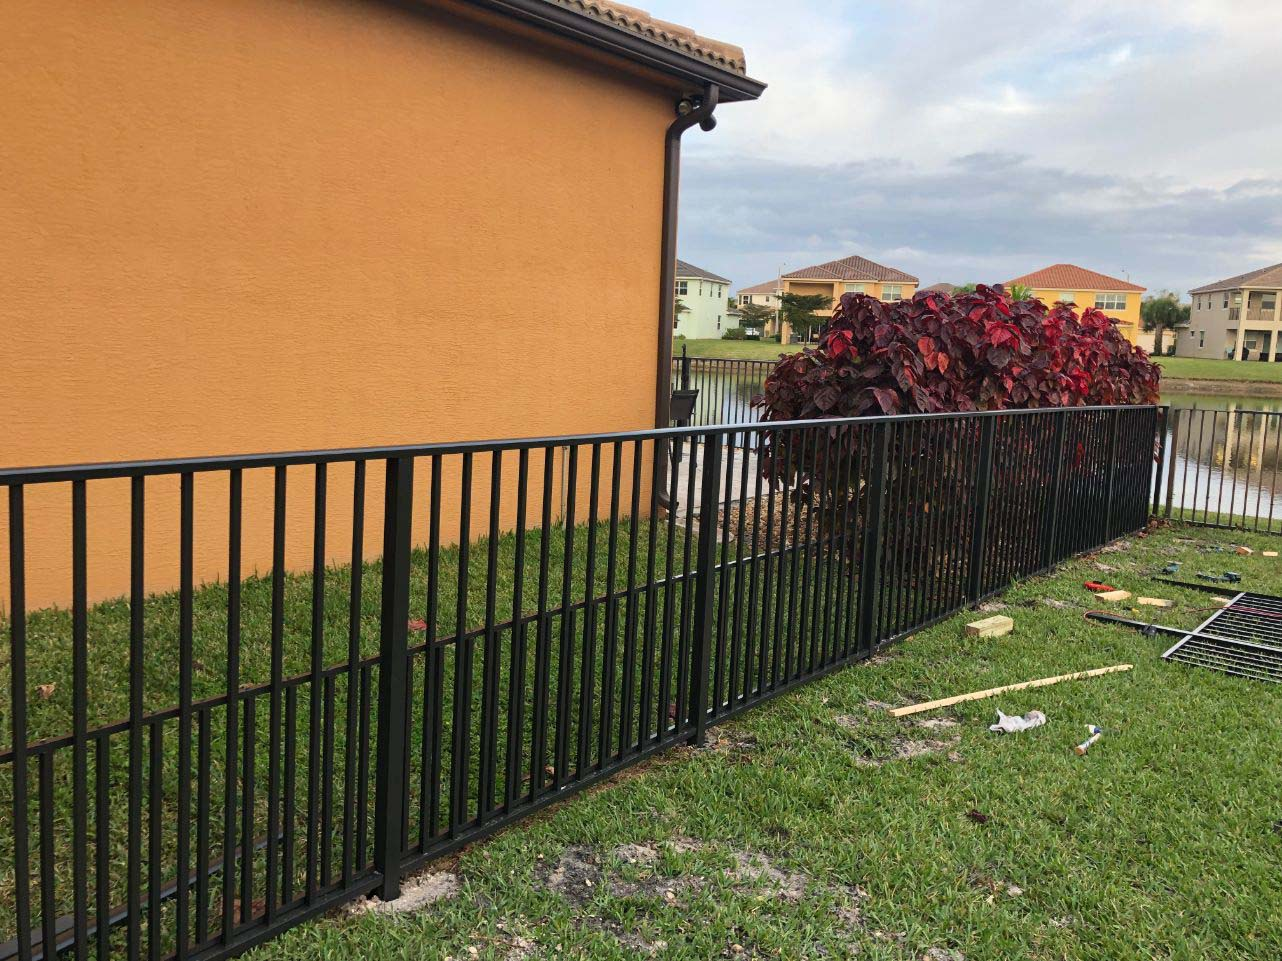 Top Fence Company in Rollingwood, TX.